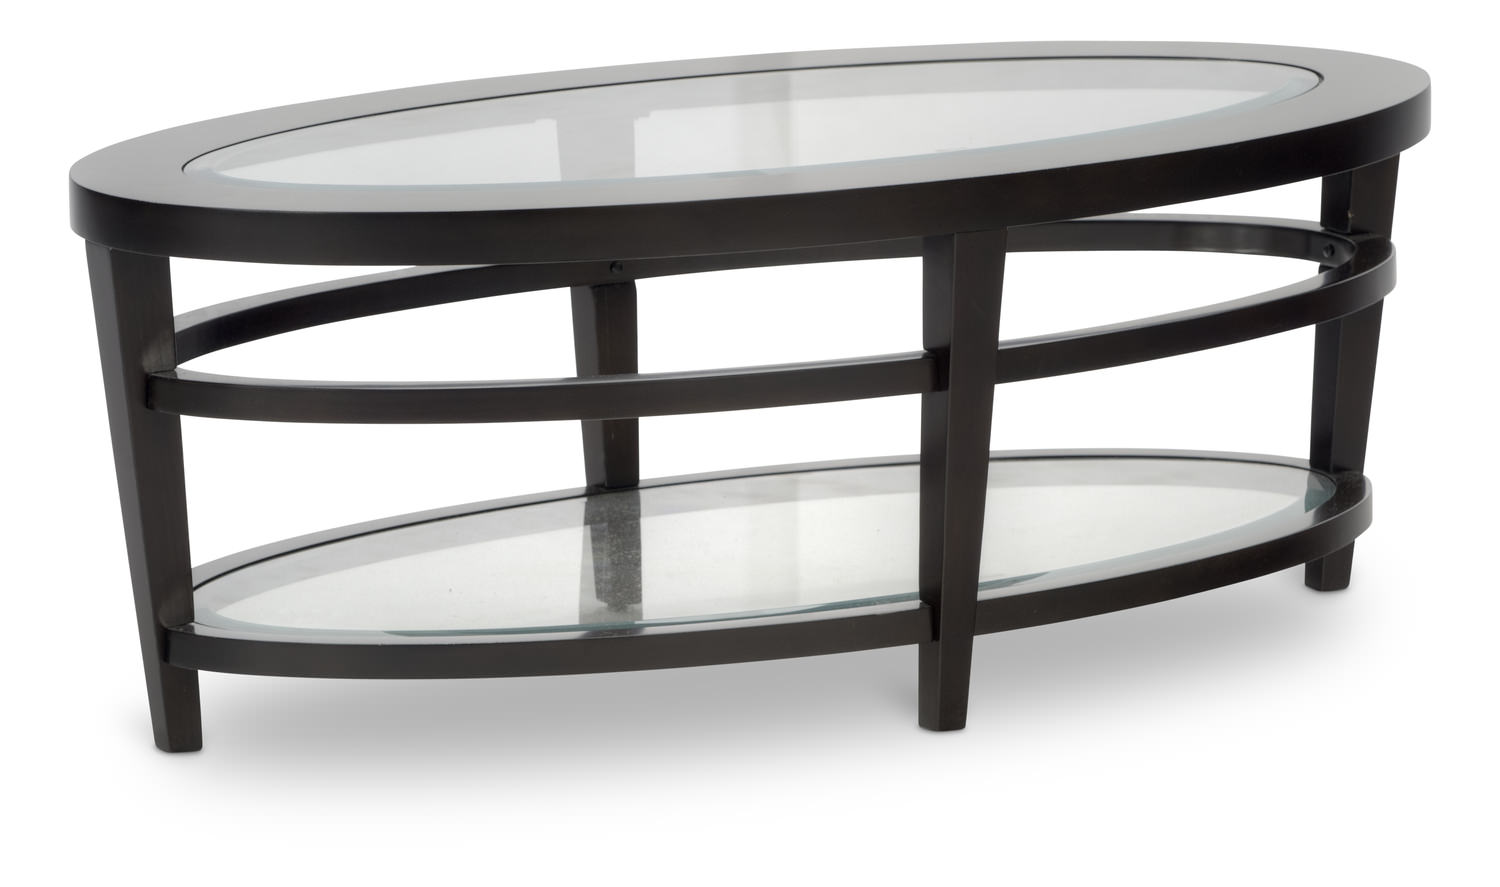 Urbana oval coffee table hom furniture for Table urbana but